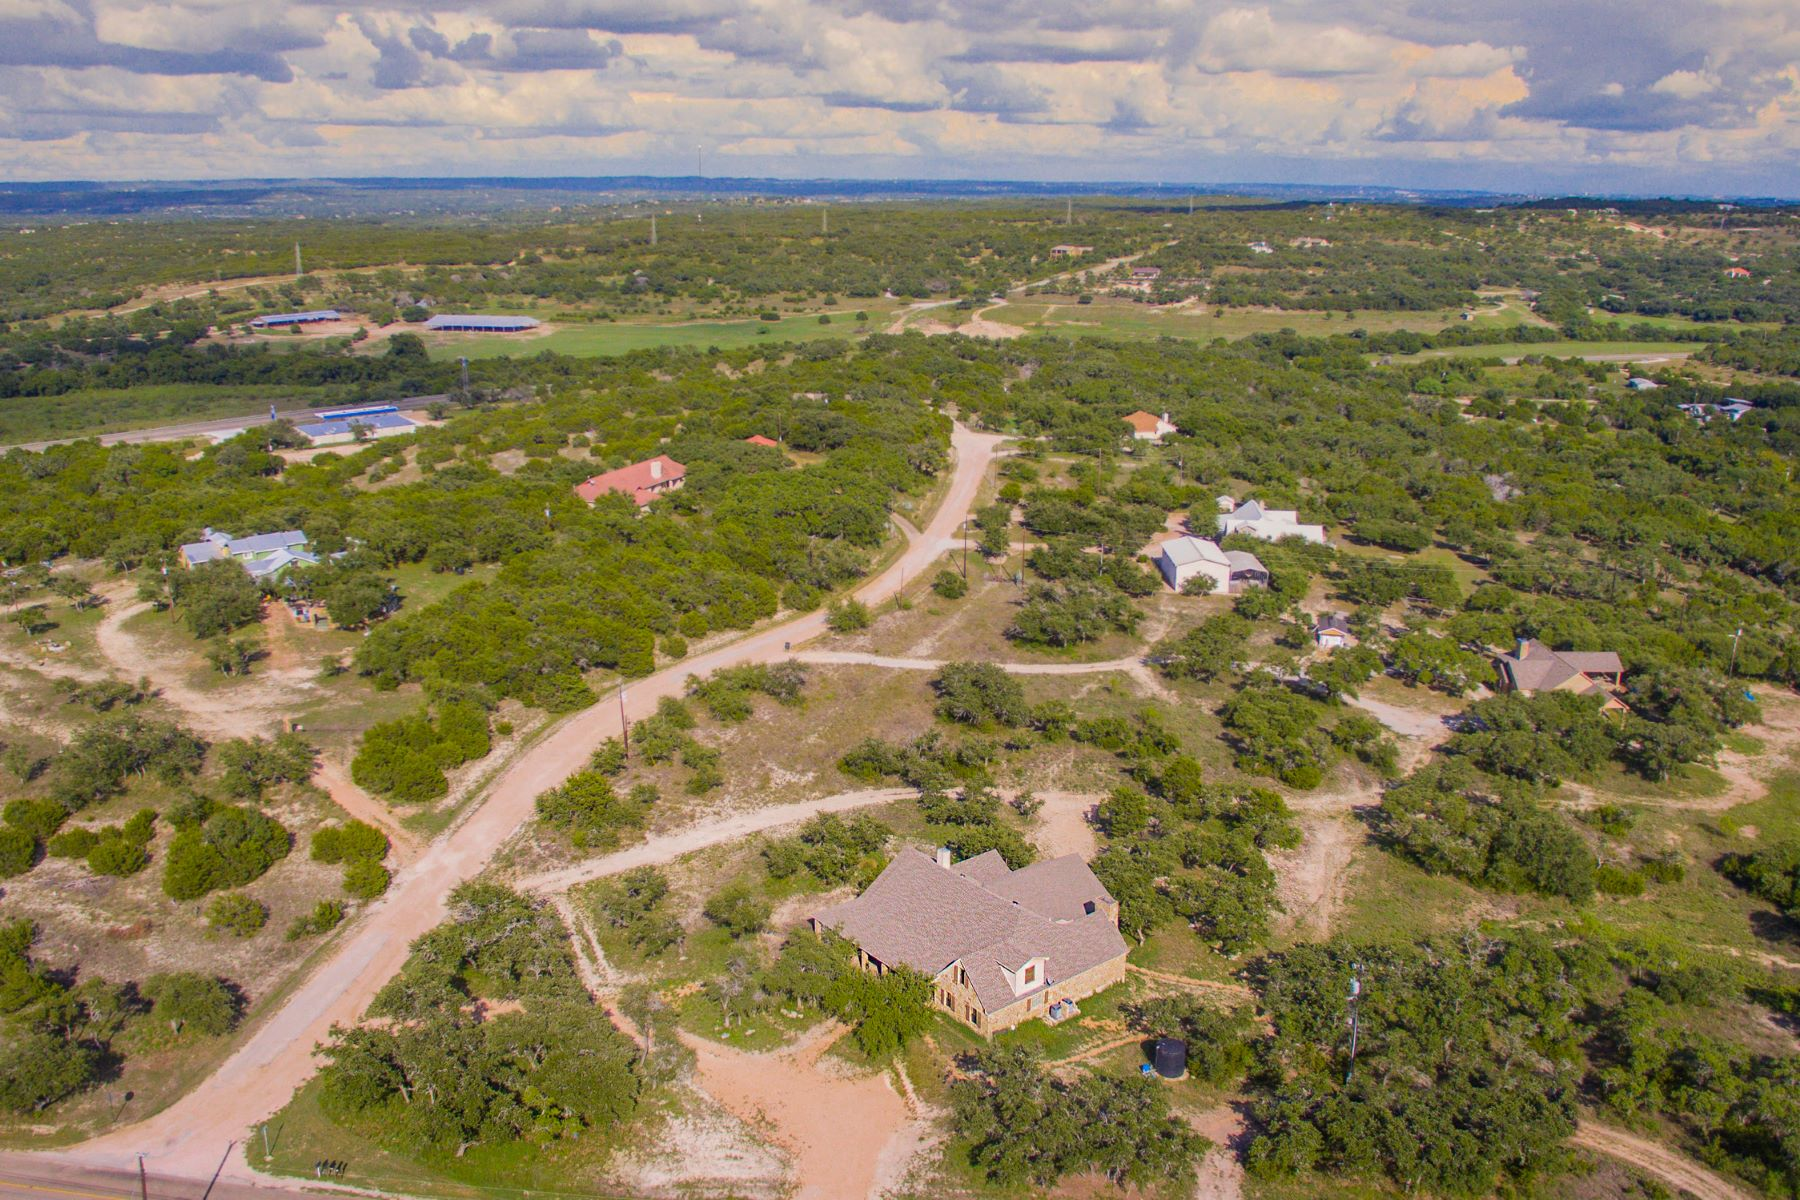 Maison unifamiliale pour l Vente à Peaceful Country Living at its Best 101 Chaparral Circle, Spicewood, Texas, 78669 États-Unis